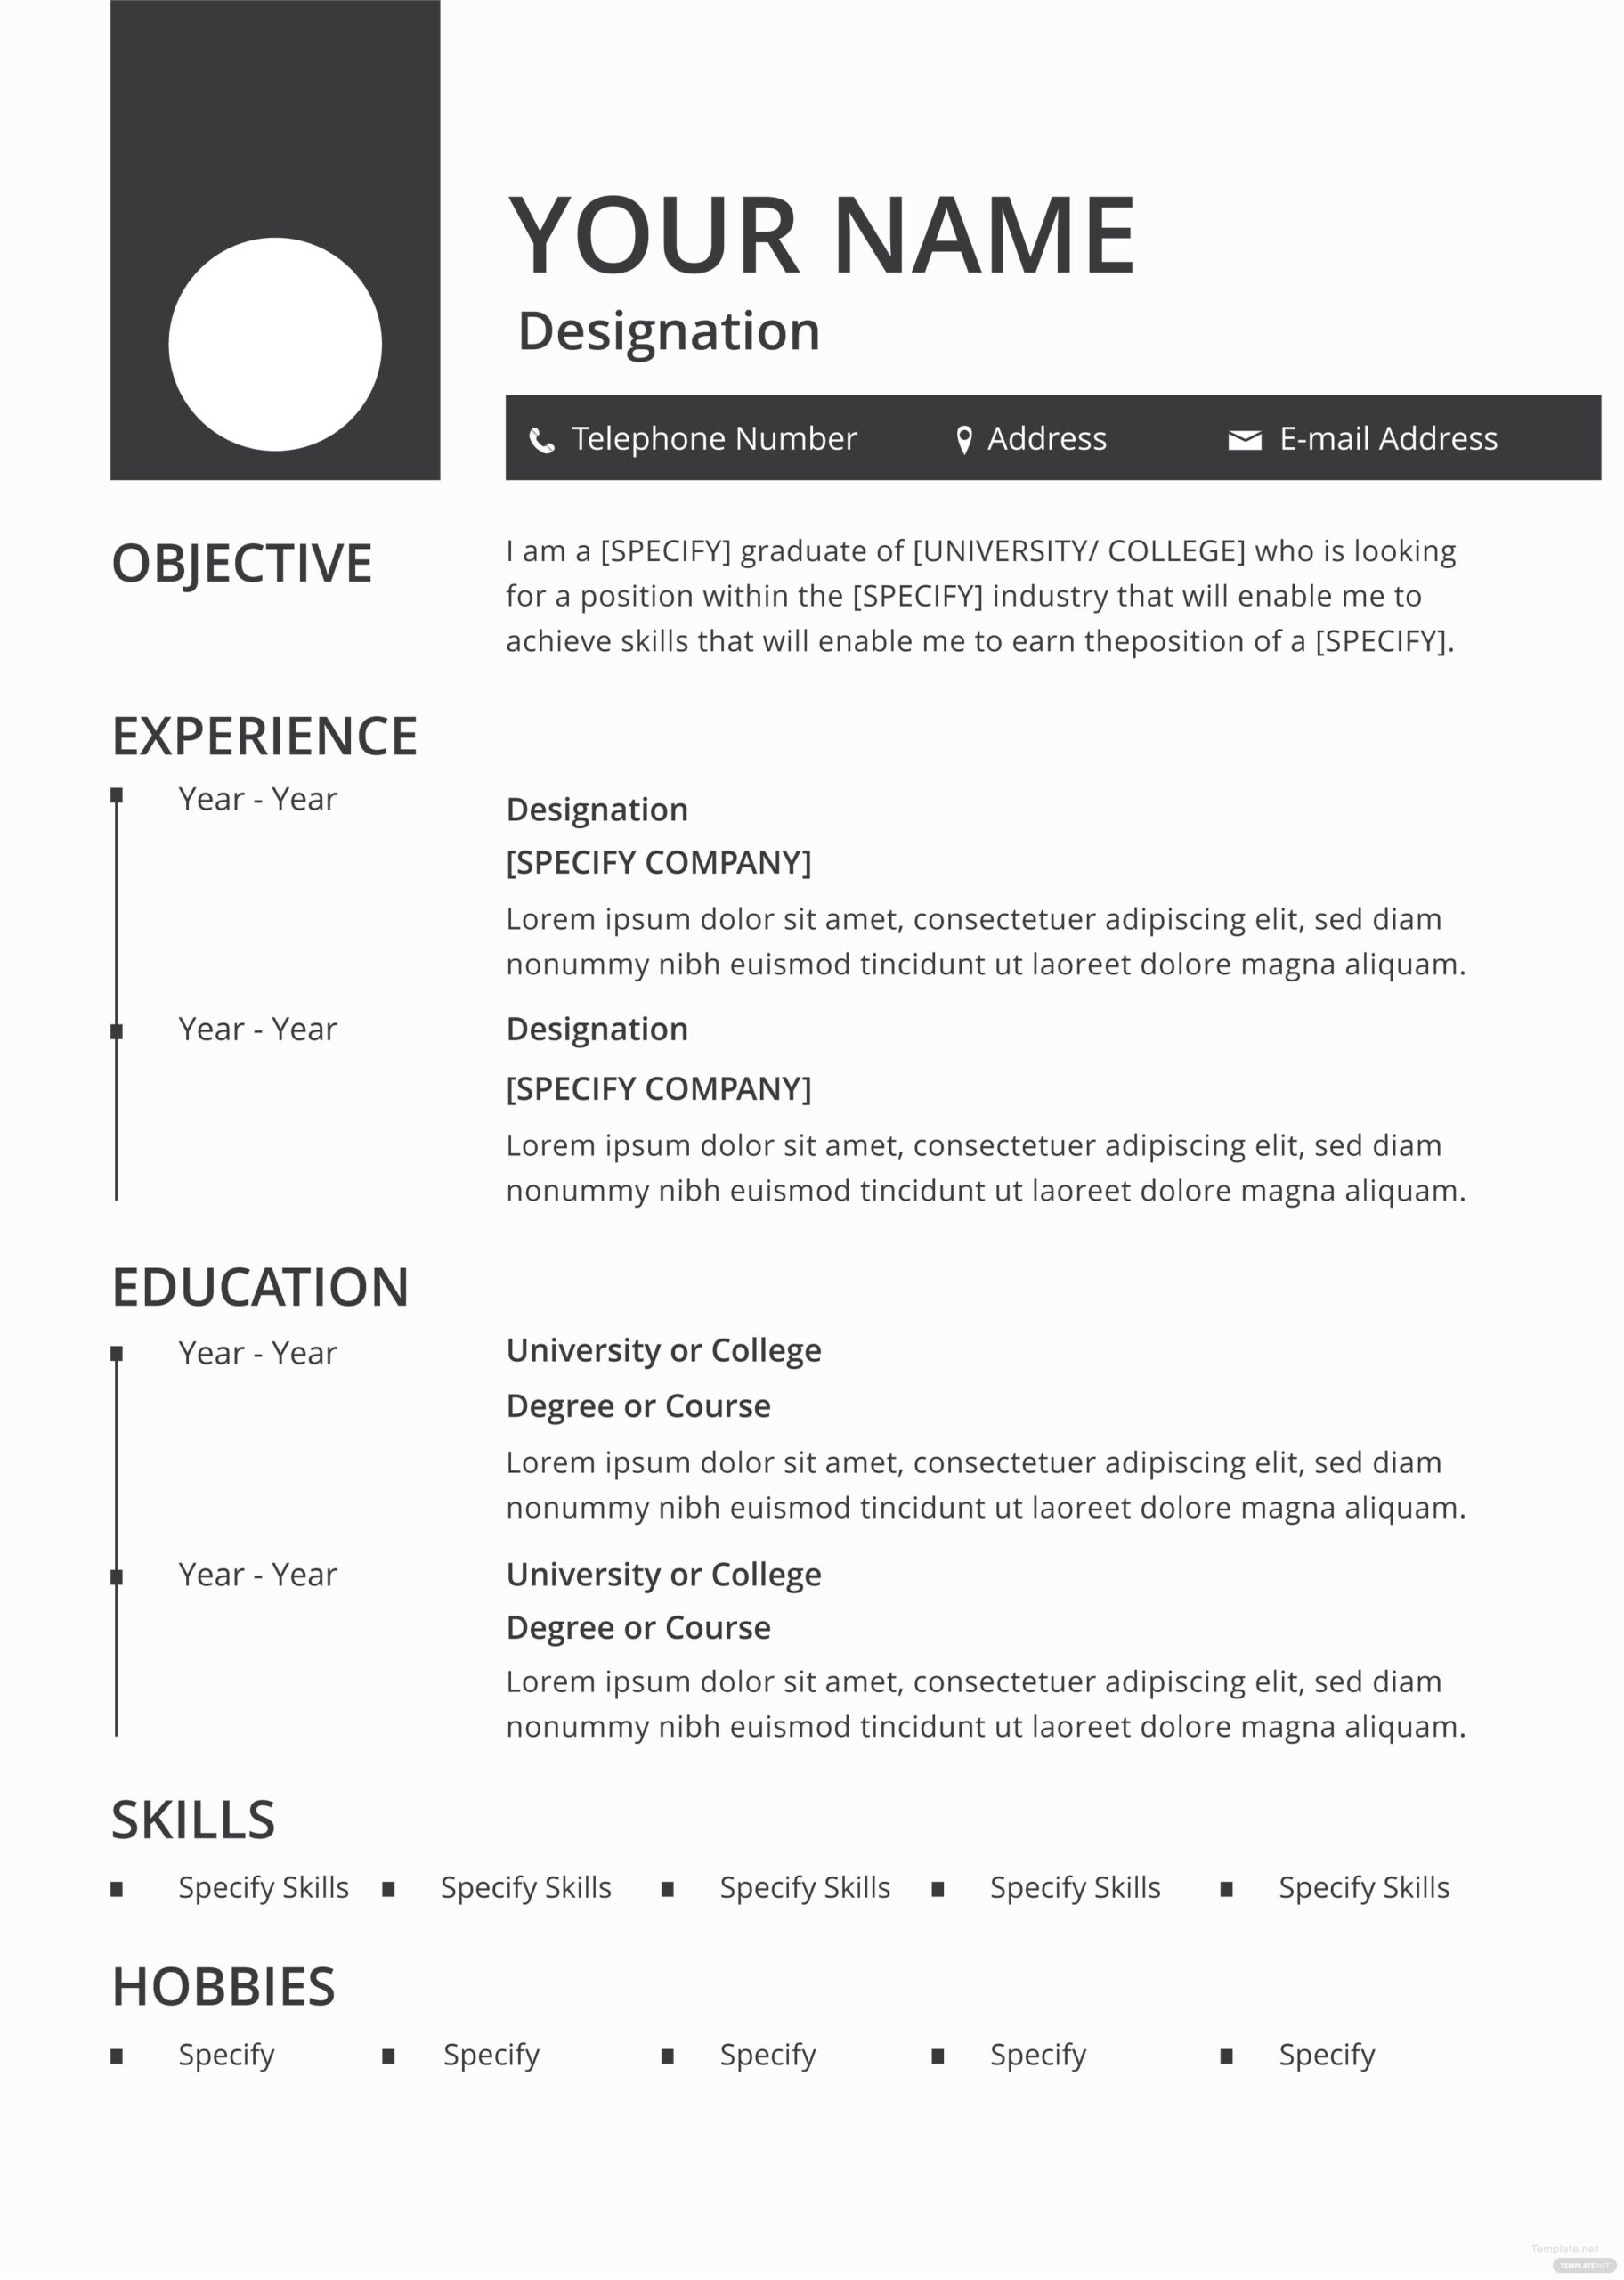 free blank resume and cv template in adobe photoshop microsoft word publisher best blan Resume Adobe Photoshop Experience Resume